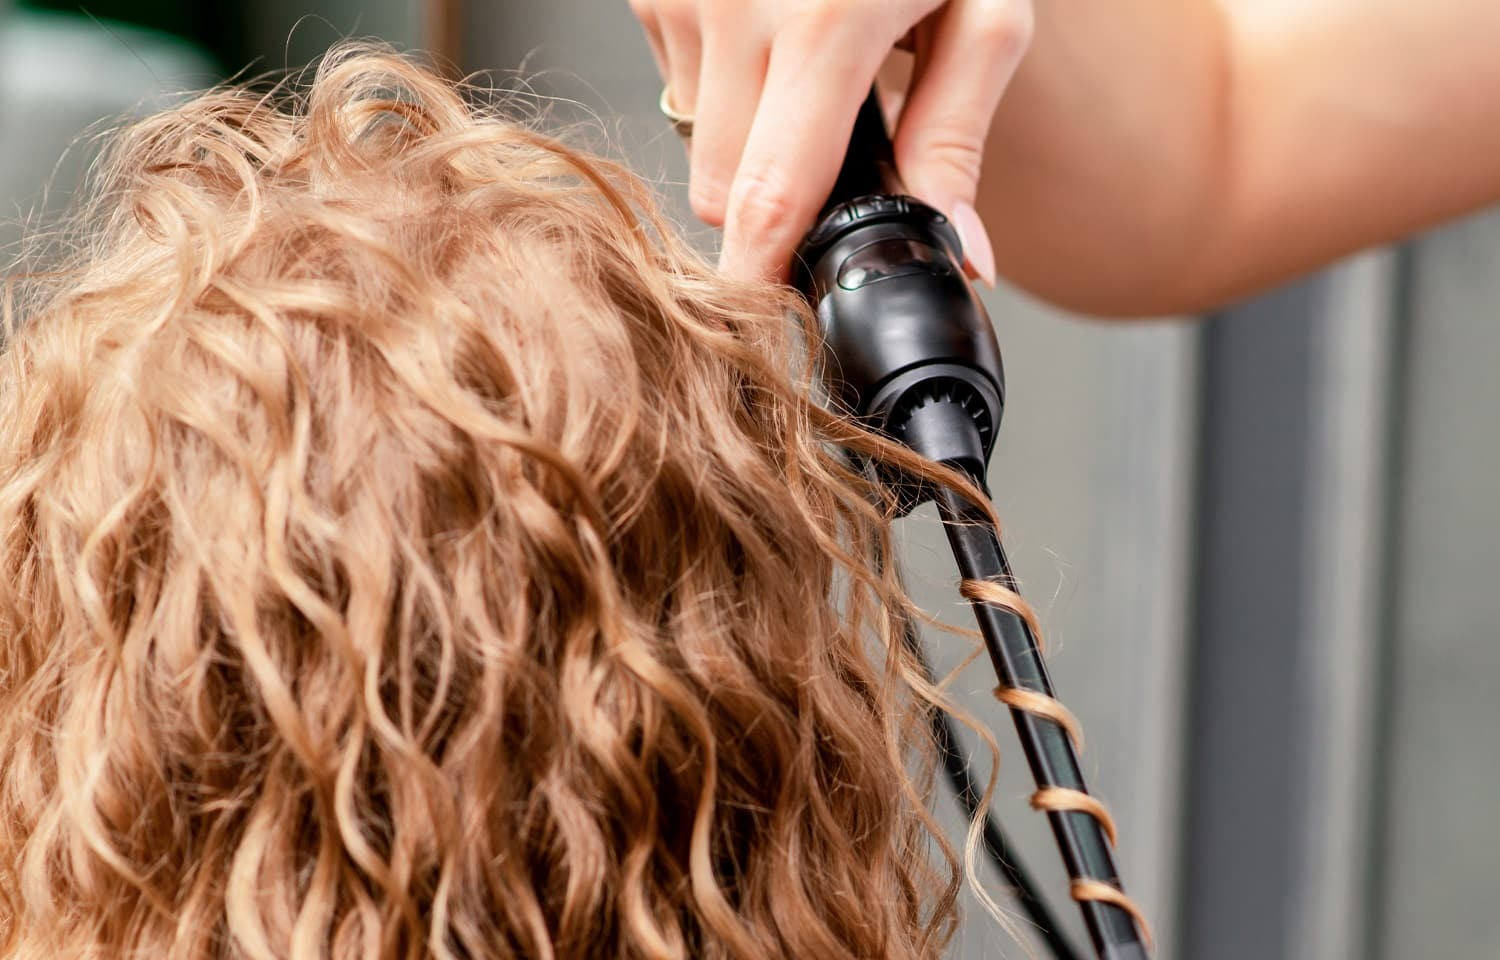 Hairdresser hands curl woman's hair by curling iron in salon.